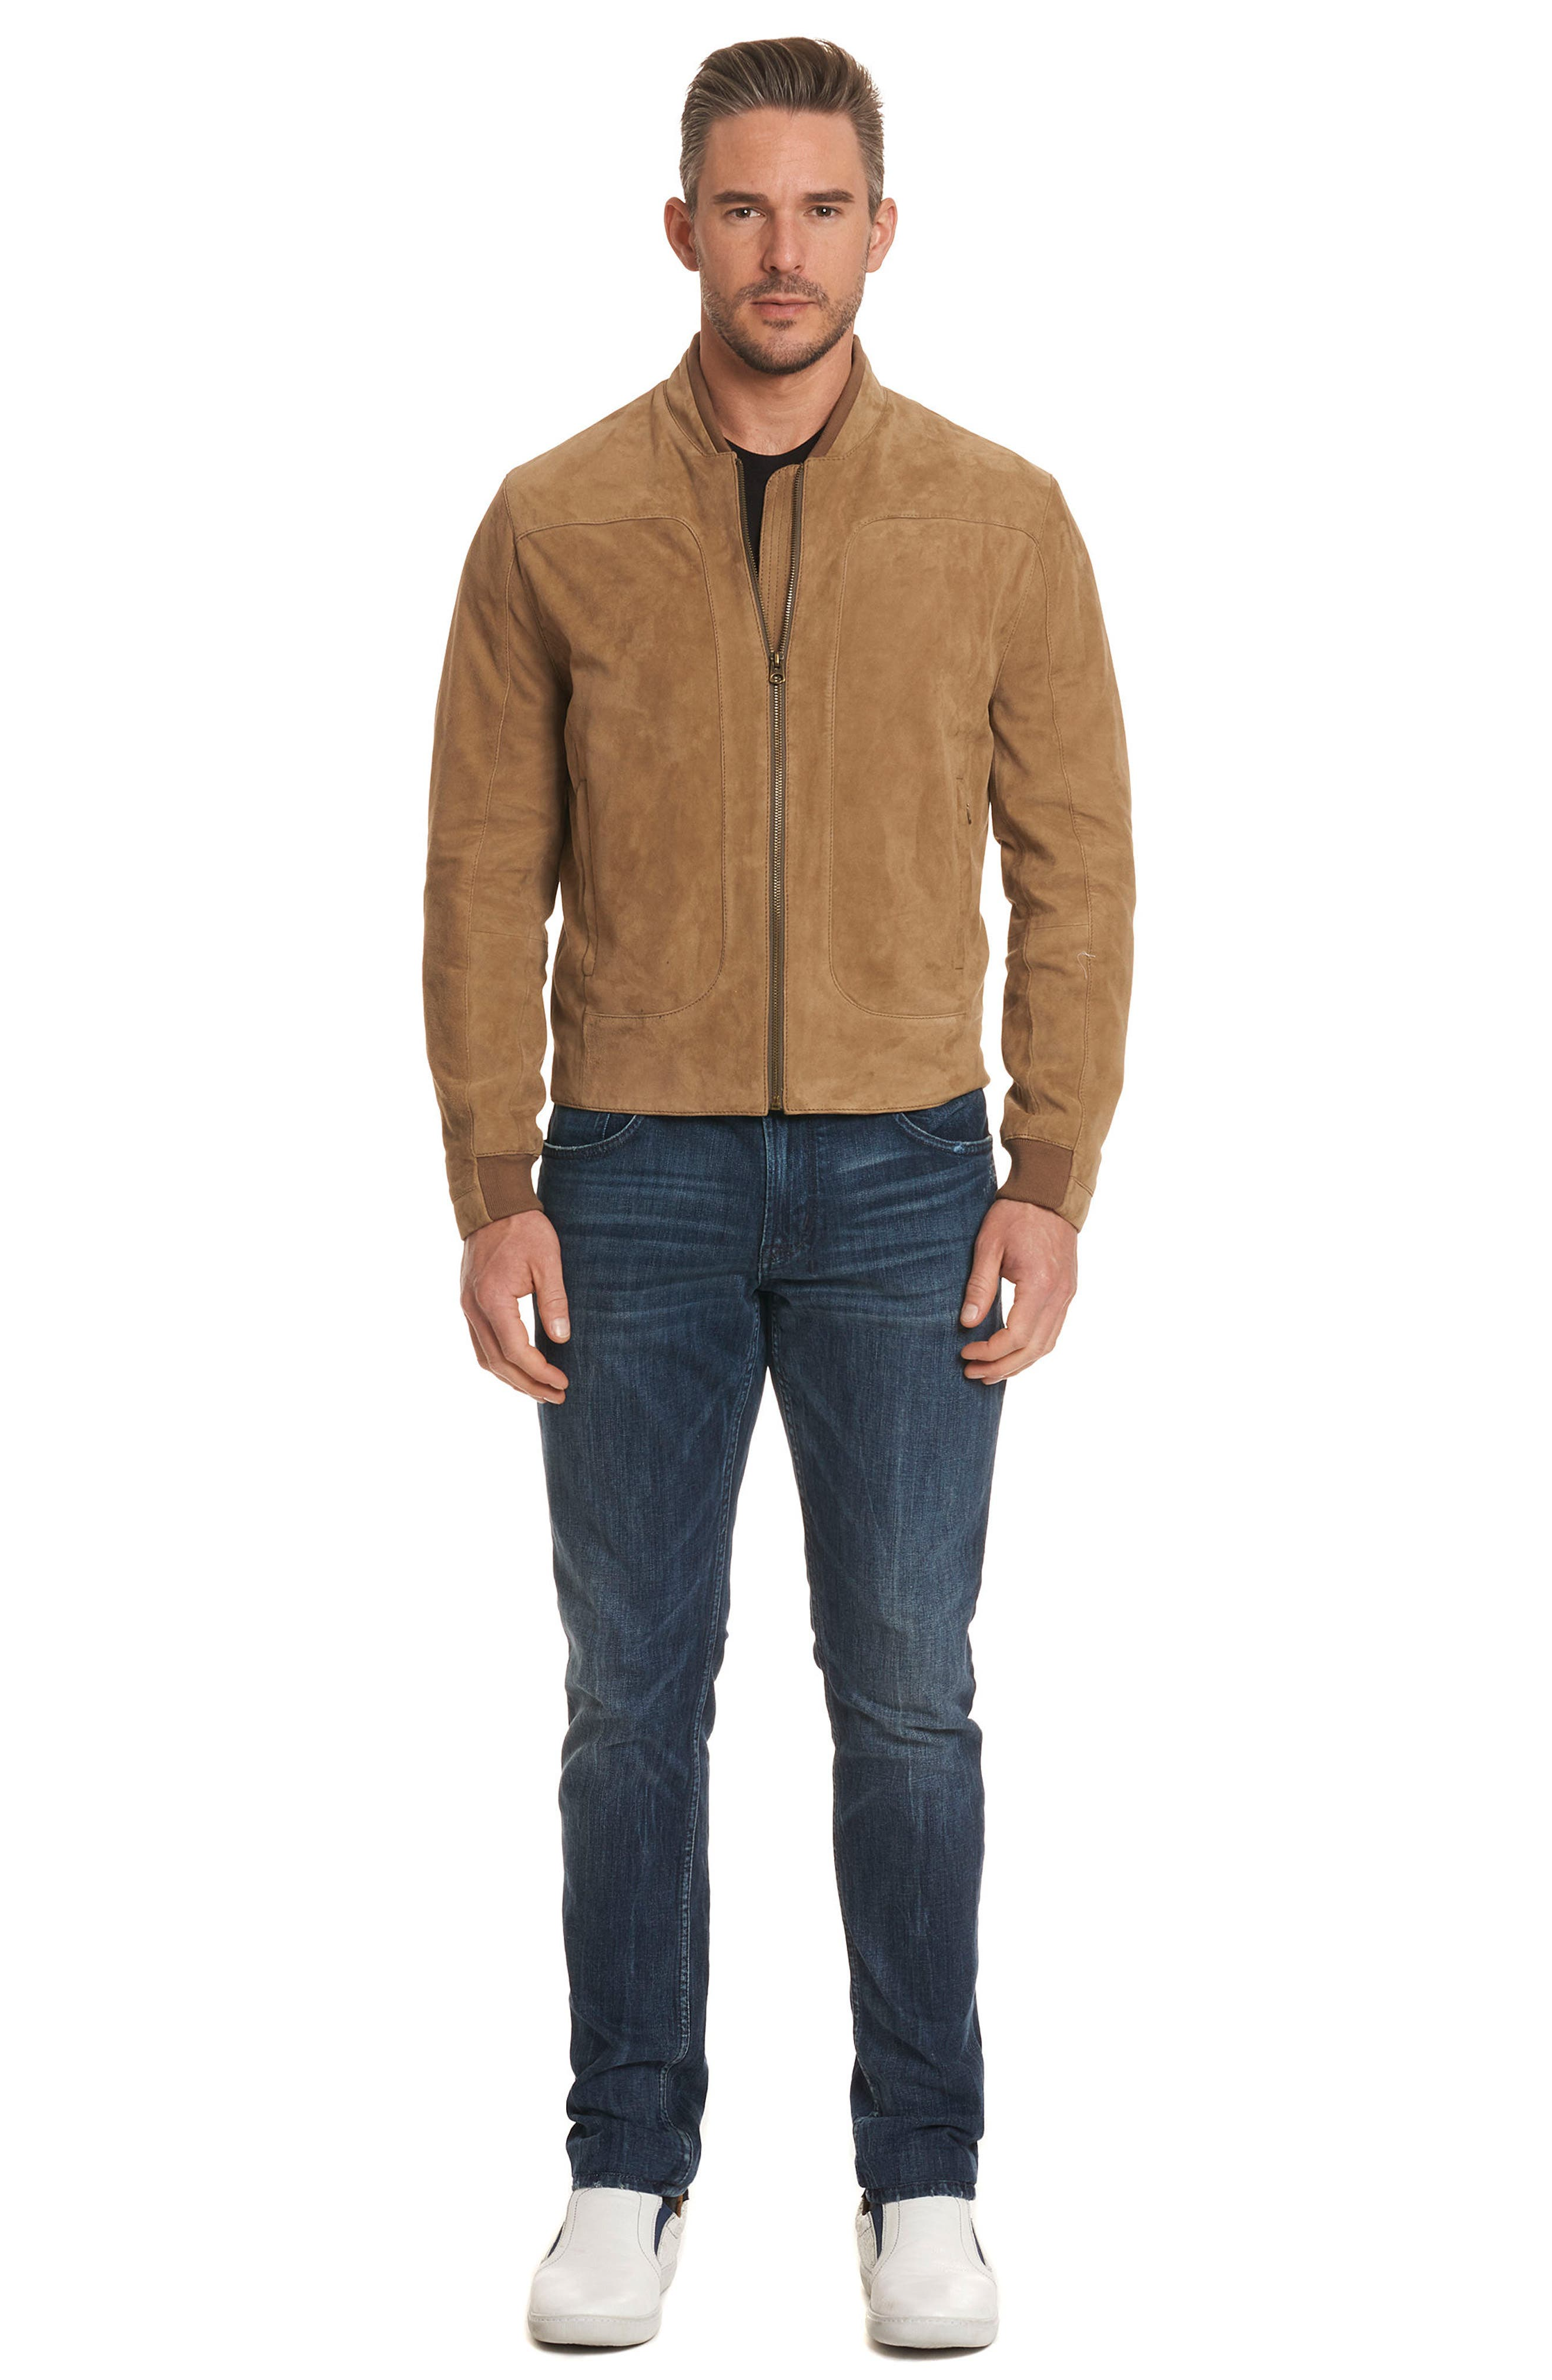 Ramos Suede Bomber Jacket,                             Alternate thumbnail 4, color,                             200